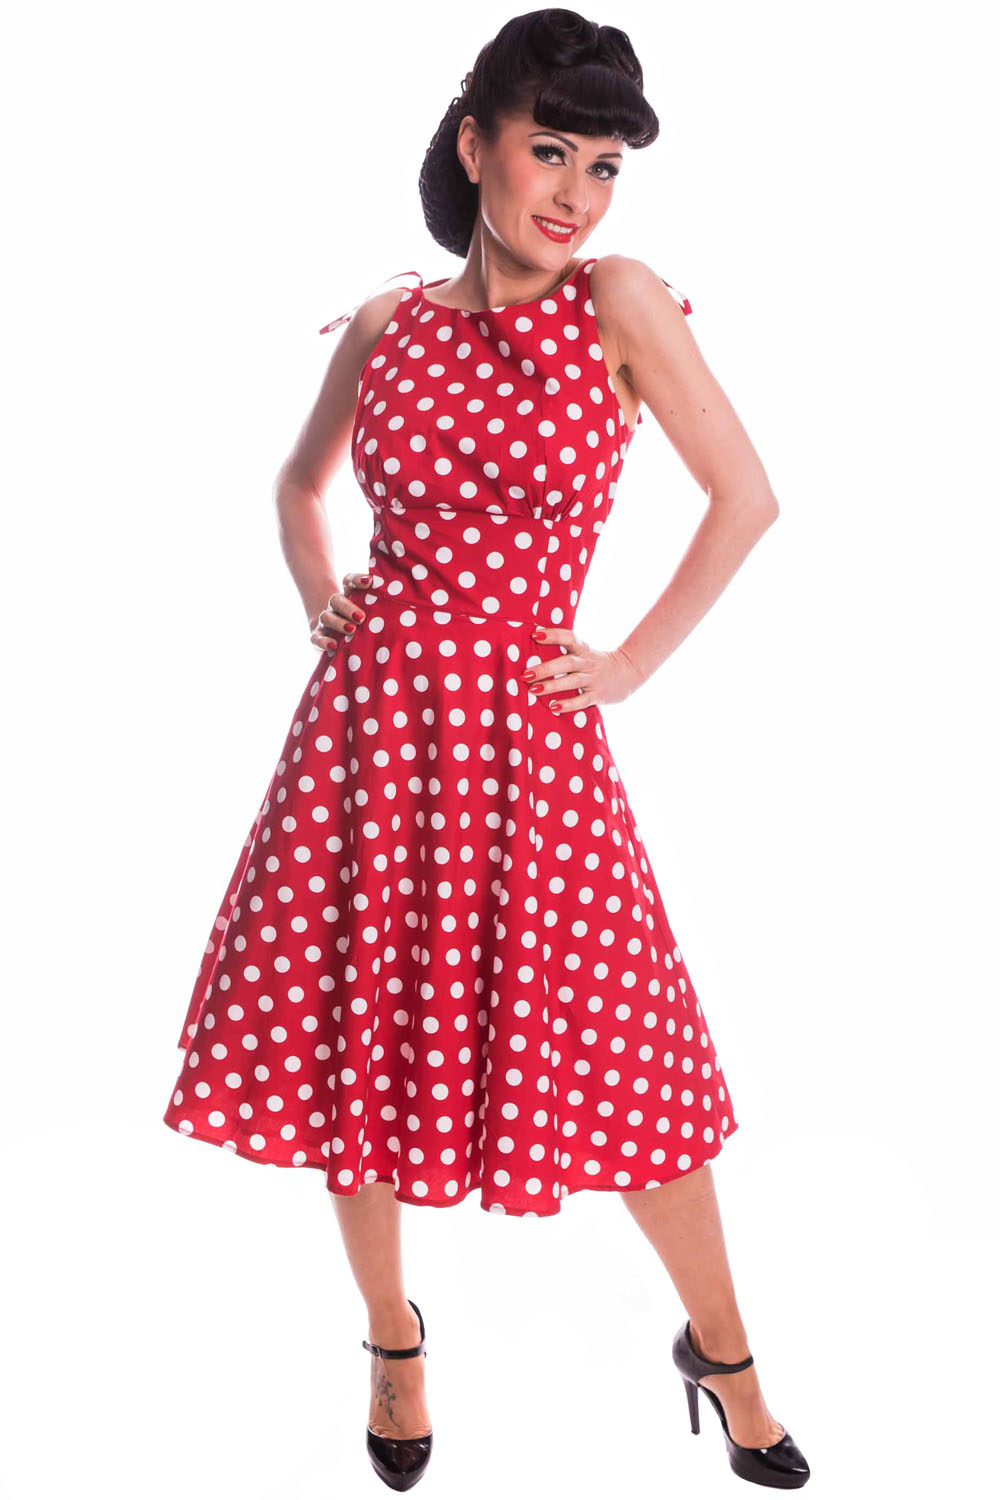 Retro Petticoatkleid Pin Up Polka Dots Sommer Swing Kleid Trägerkleid